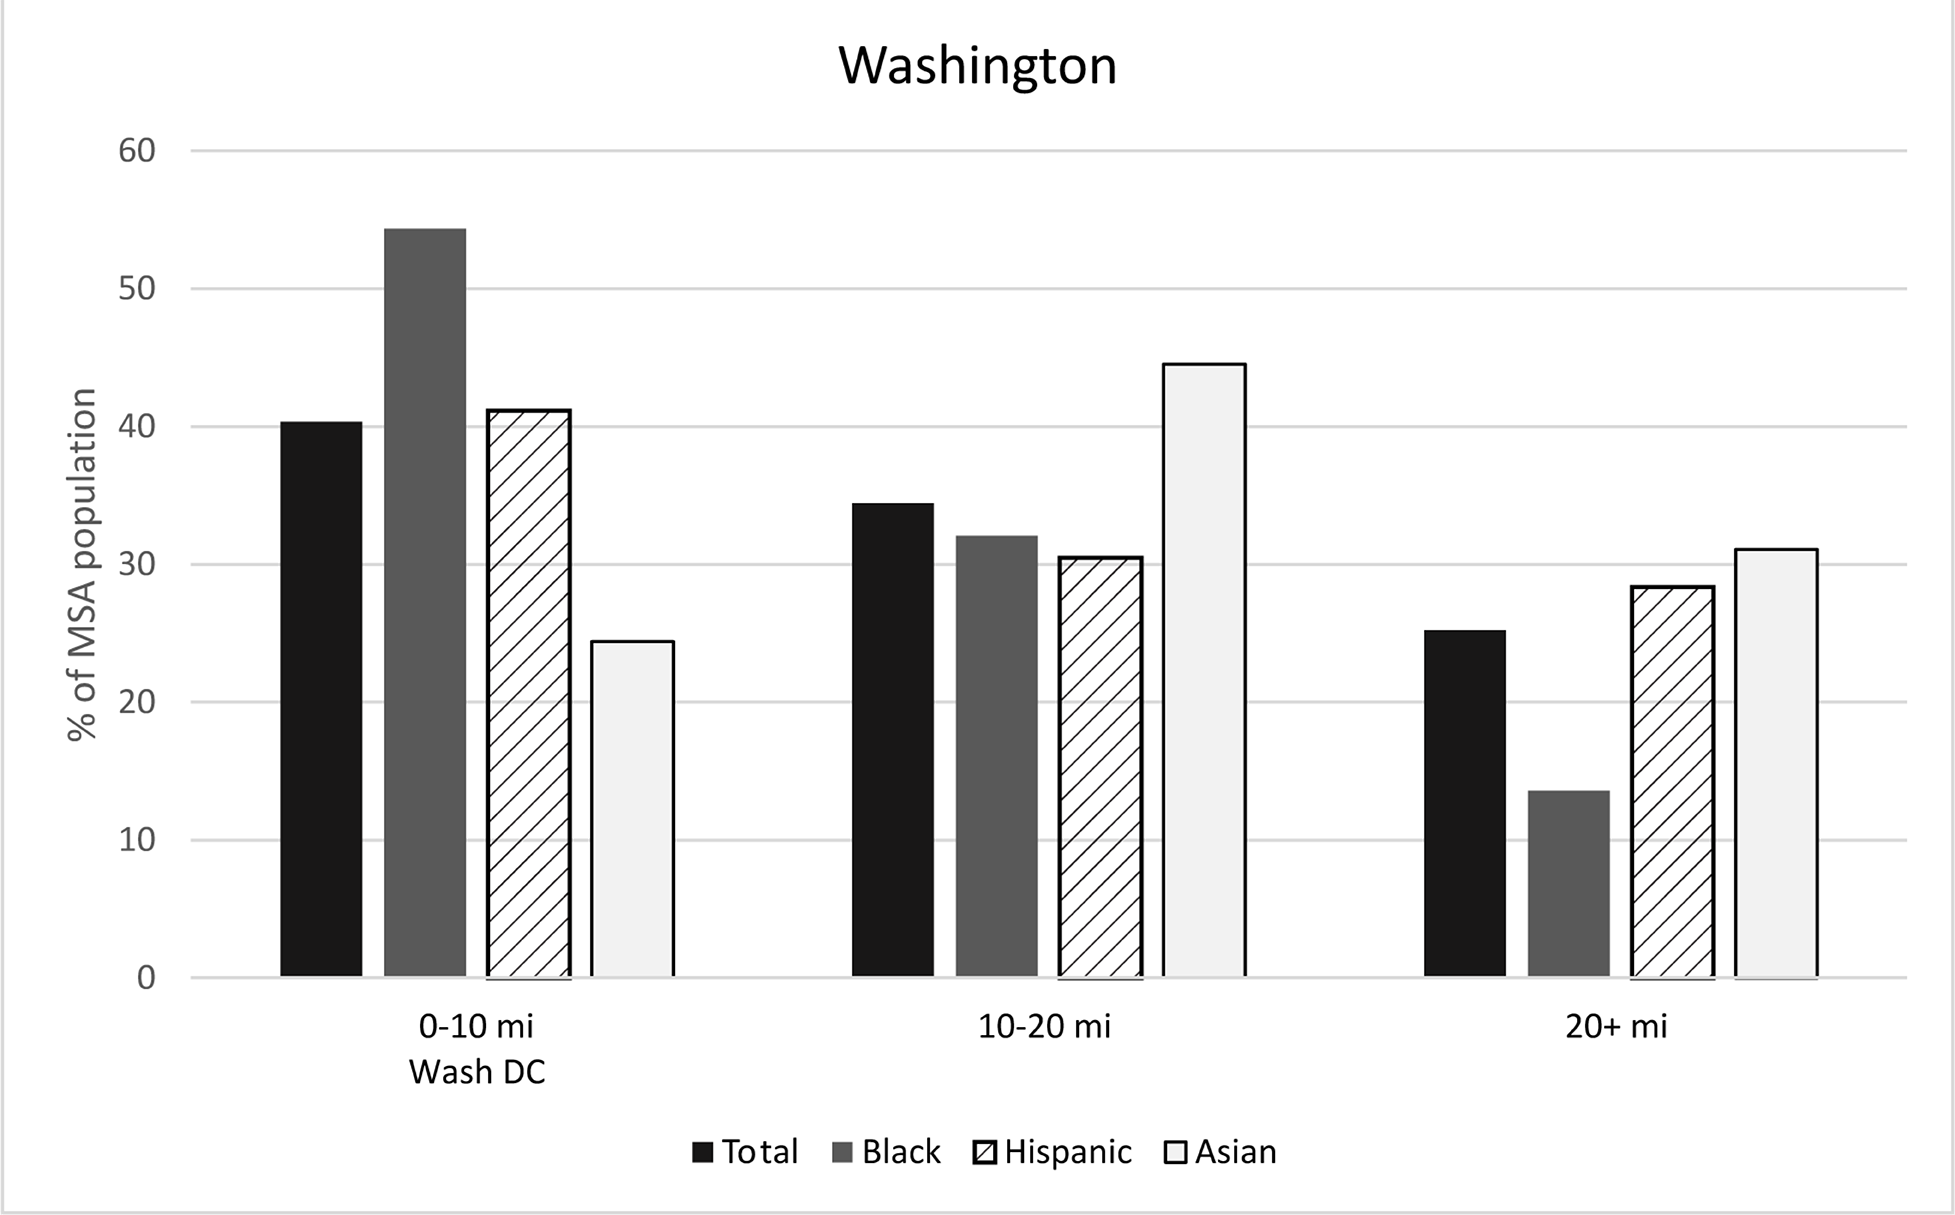 Figure 5: Racial/ethnic concentration by distance to CBD, Washington, DC. See accesslible link for data.